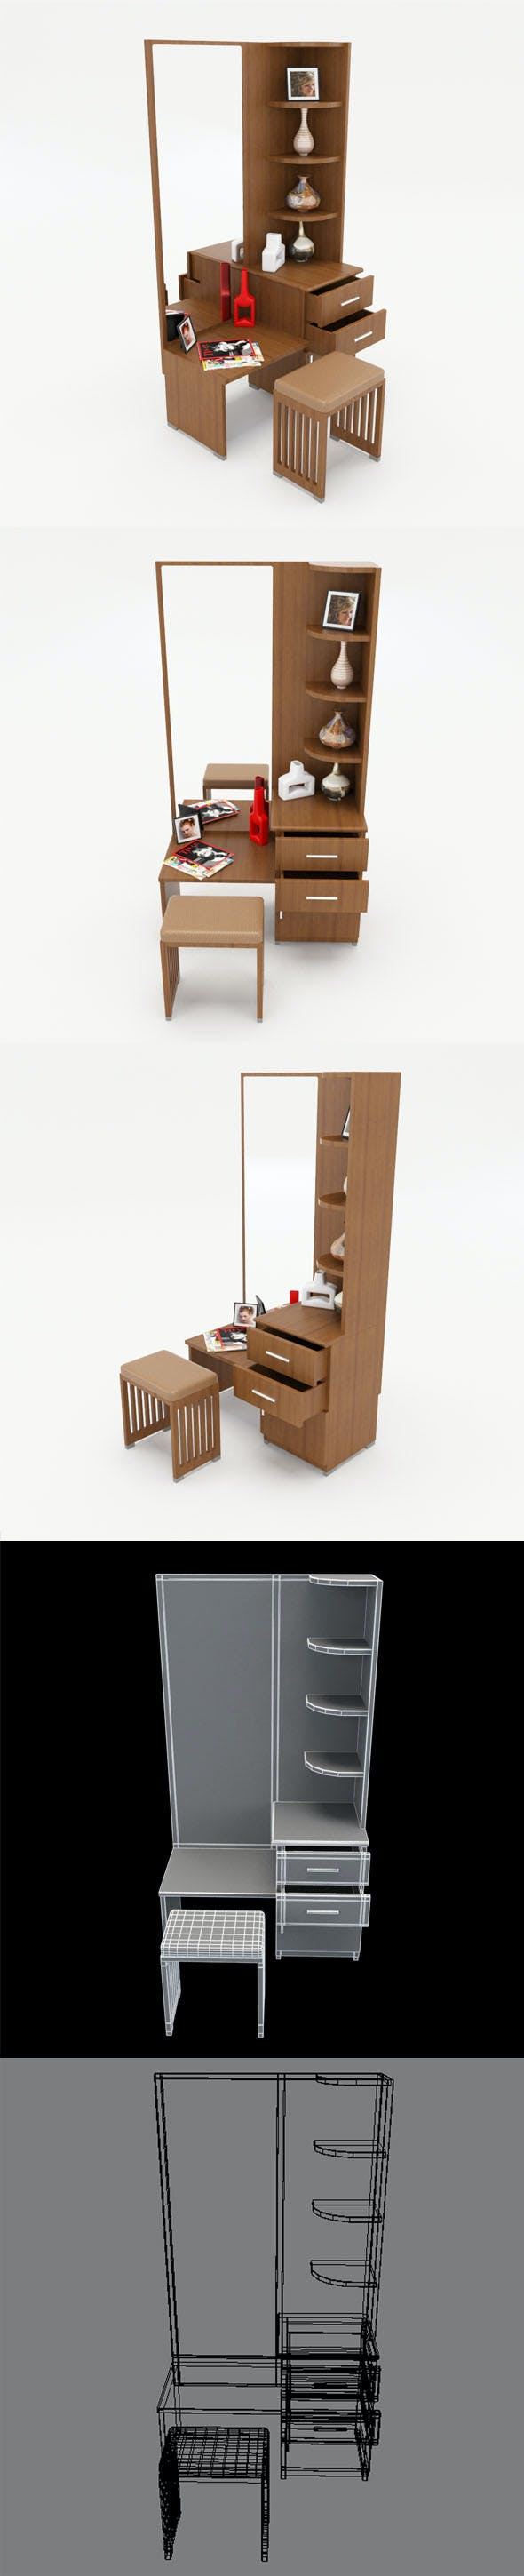 Dressing Table_2 - 3DOcean Item for Sale